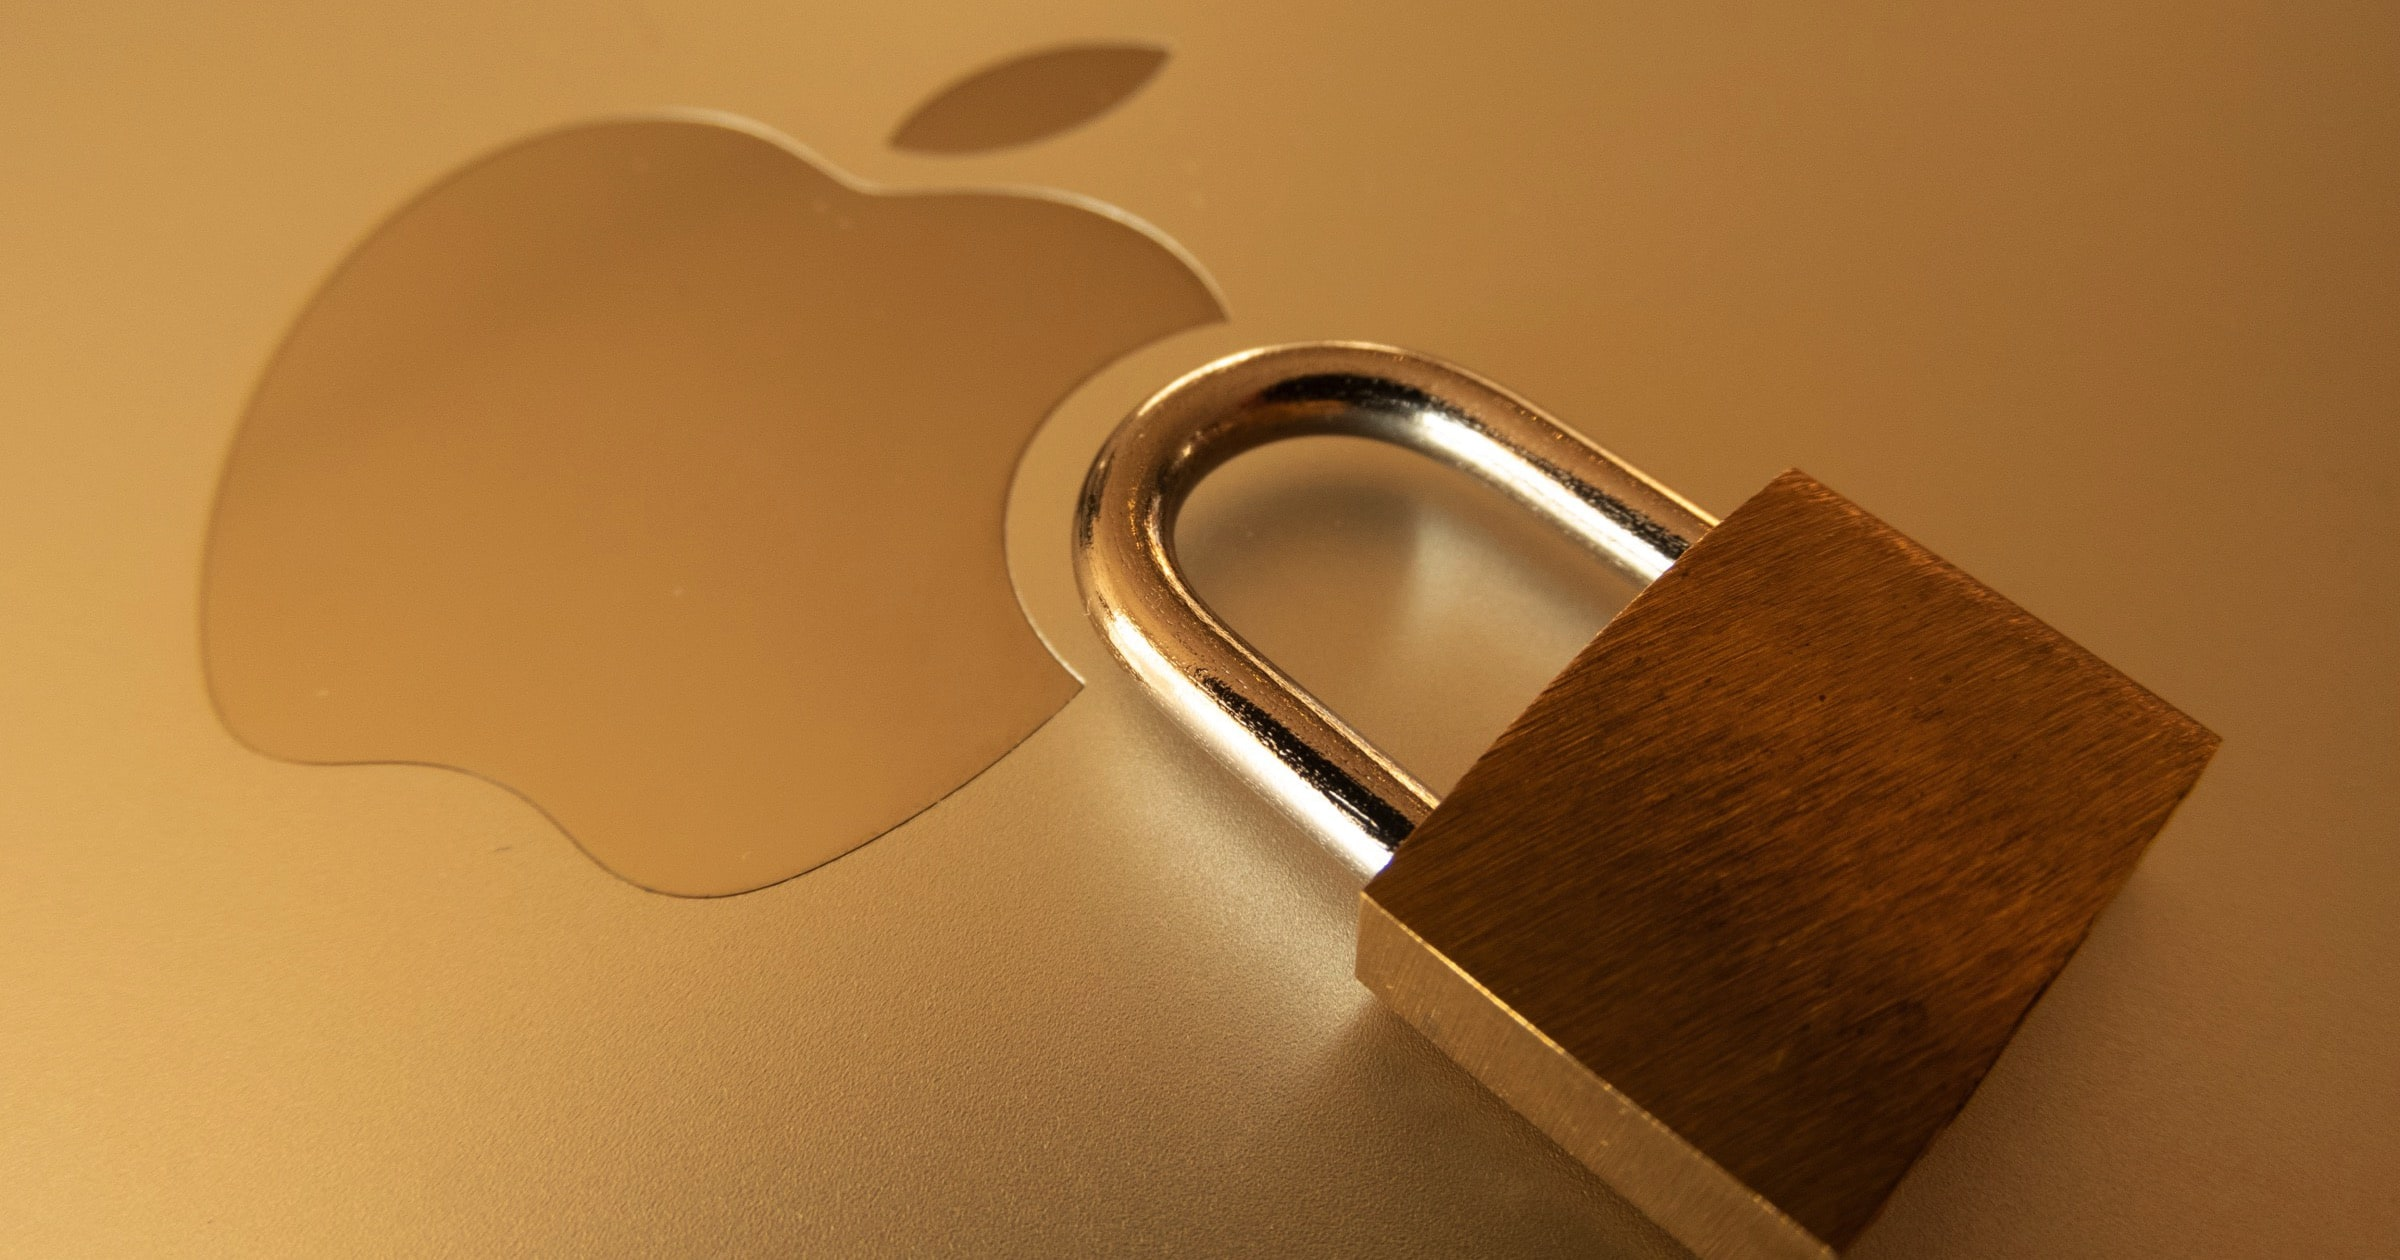 apple security with padlock